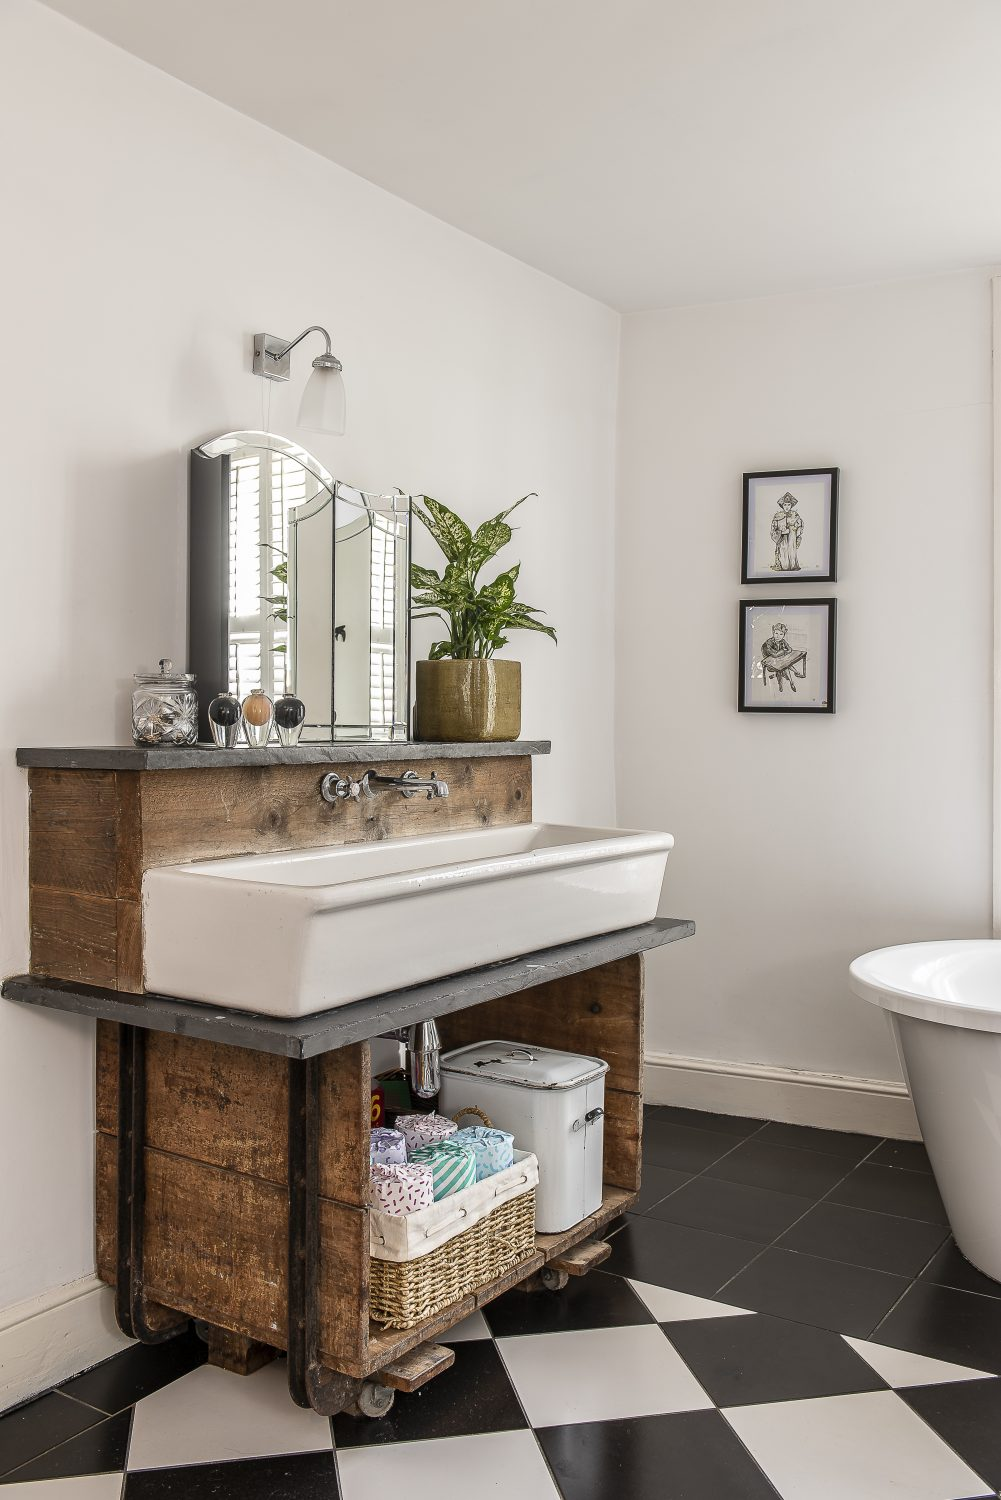 The family bathroom's bespoke vanity unit was created from an eBay find sink, a metal trolley from Rusty's Reclamation, some scaffolding boards and a chunk of slate